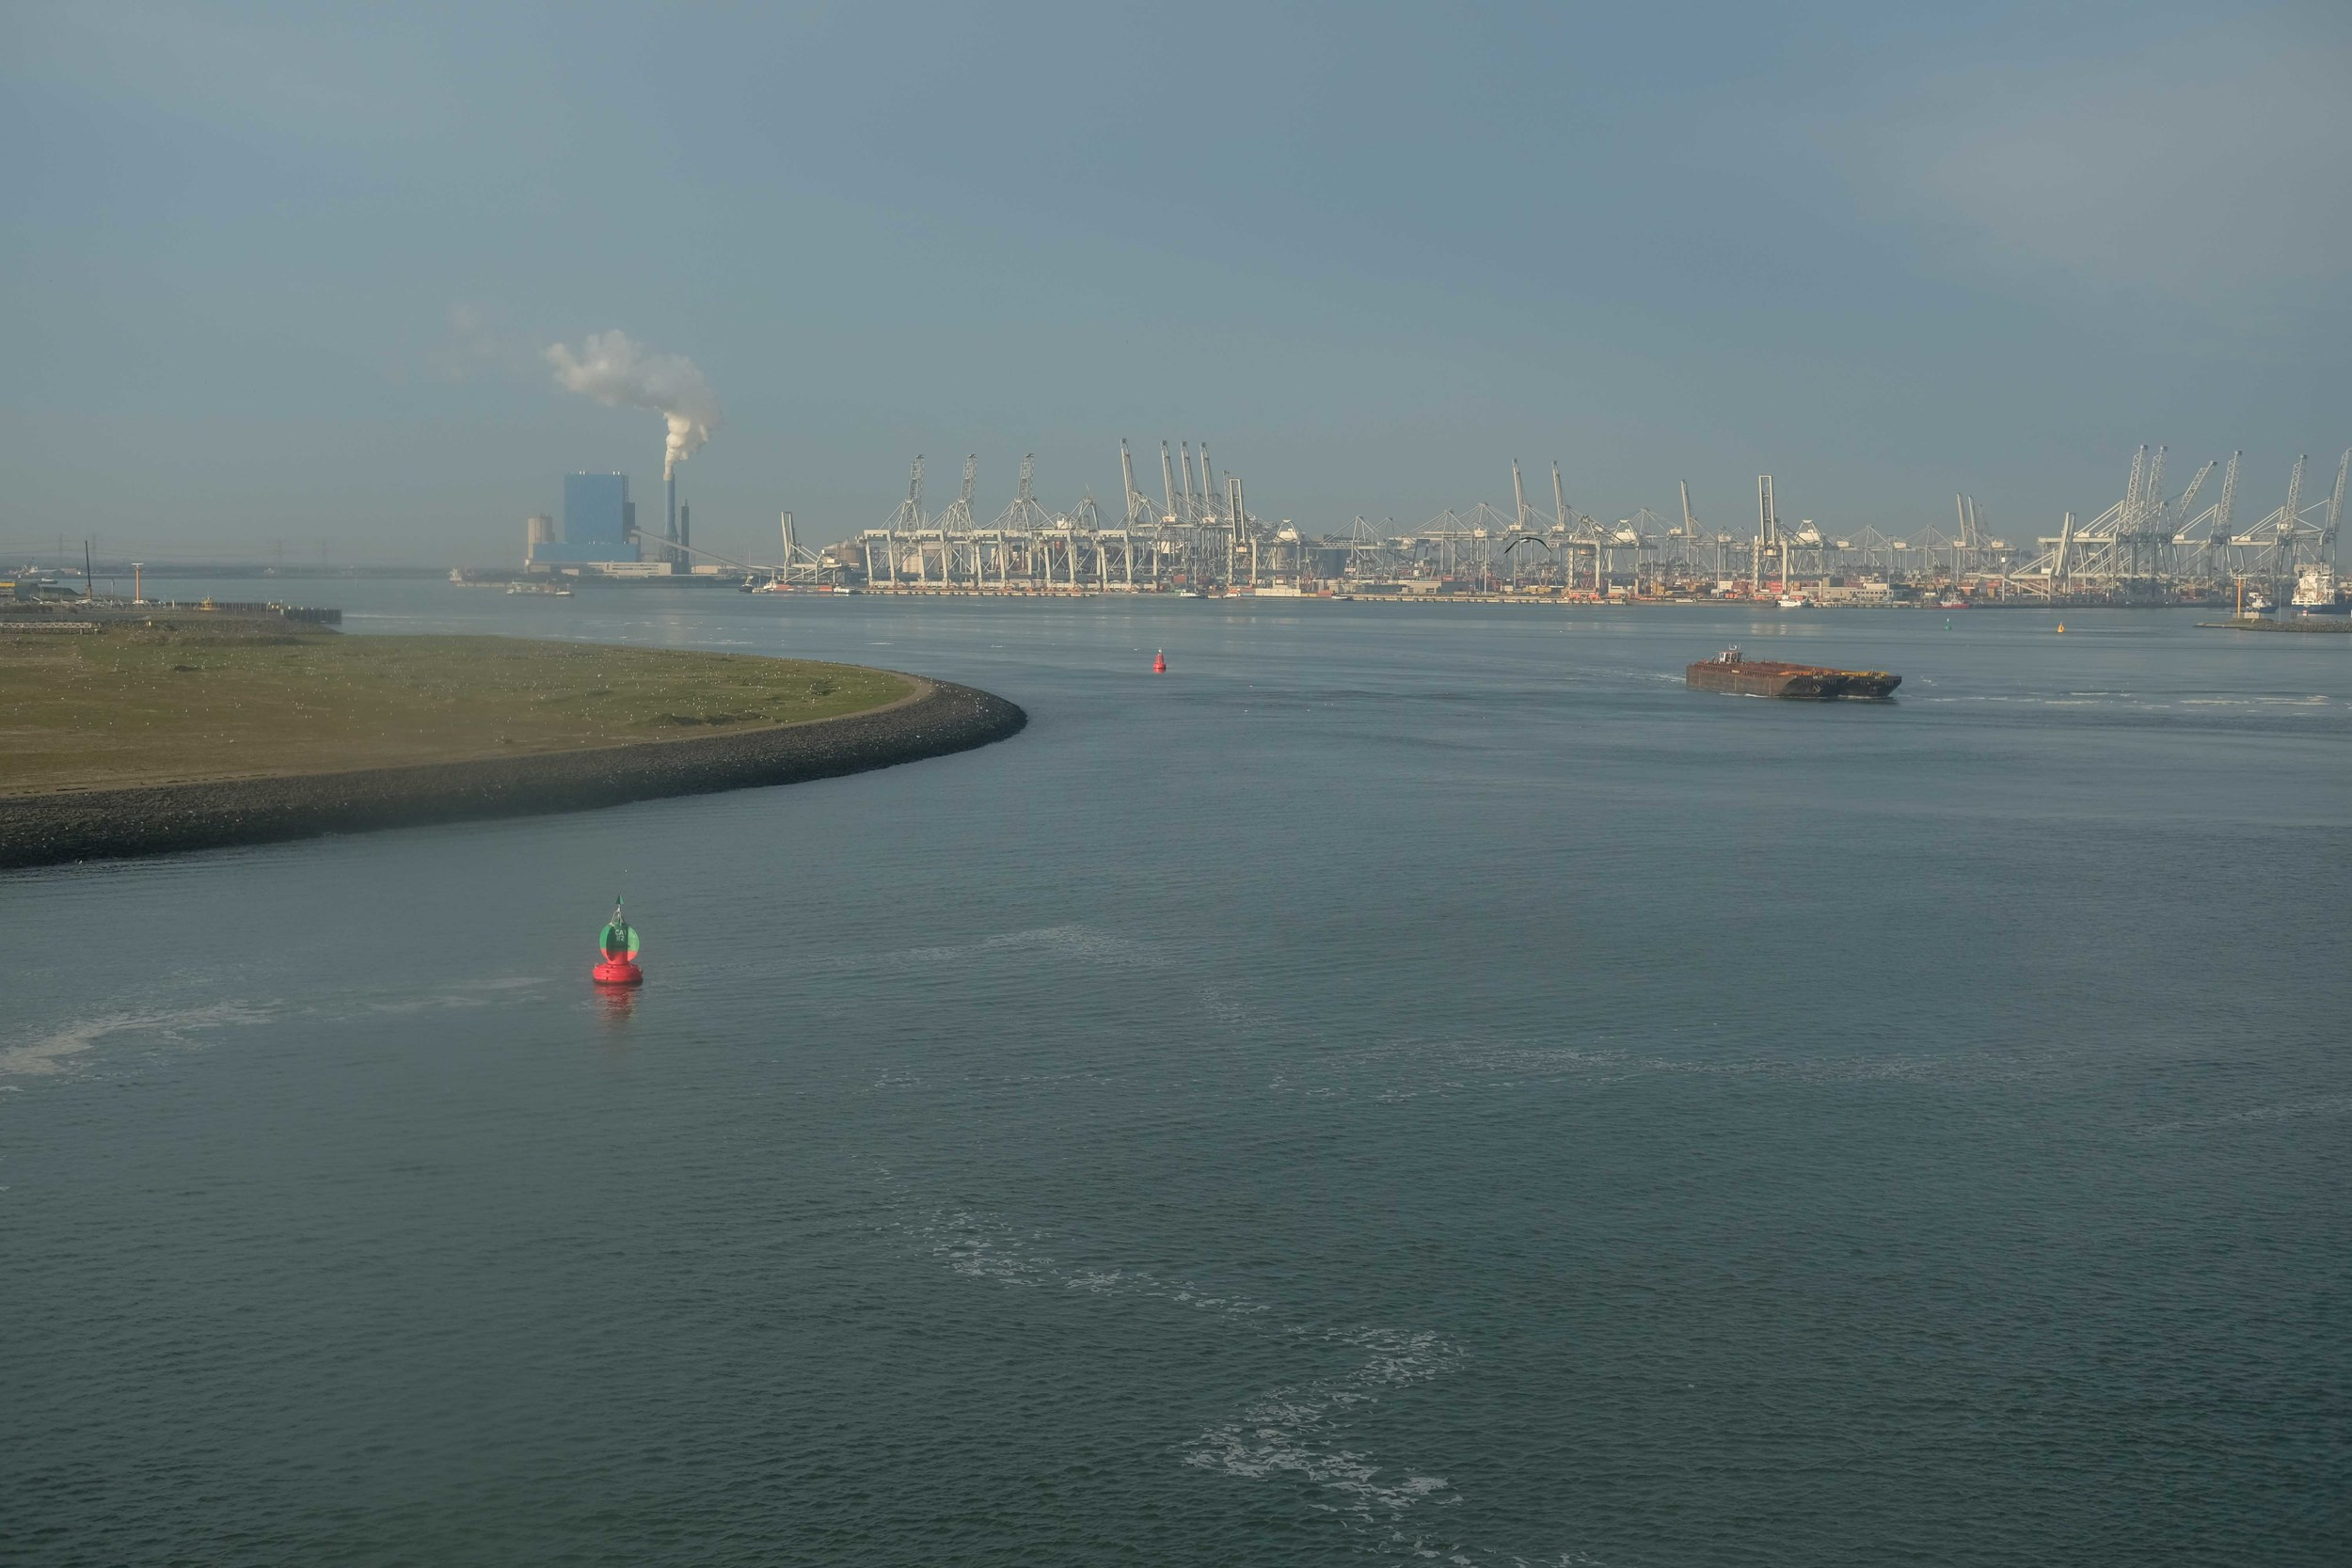 Arriving in Rotterdam